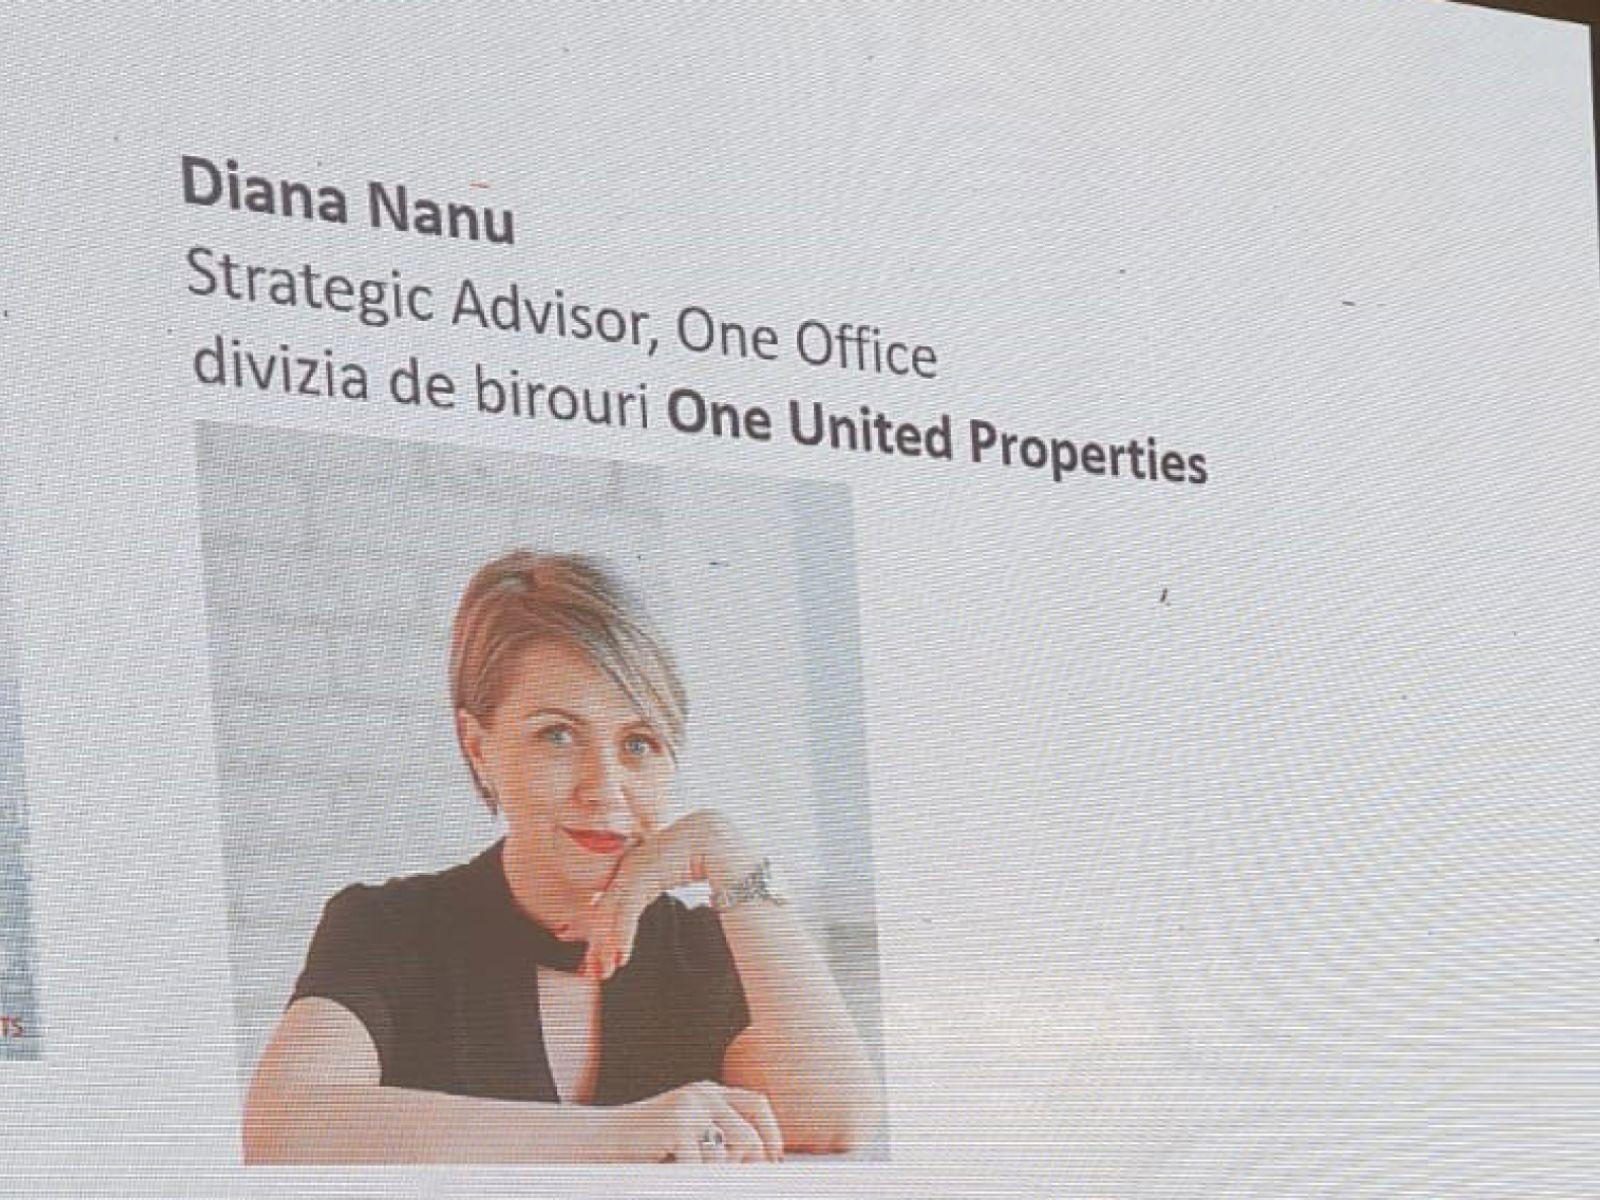 Diana Nanu at ZF Offices and Residential Conference